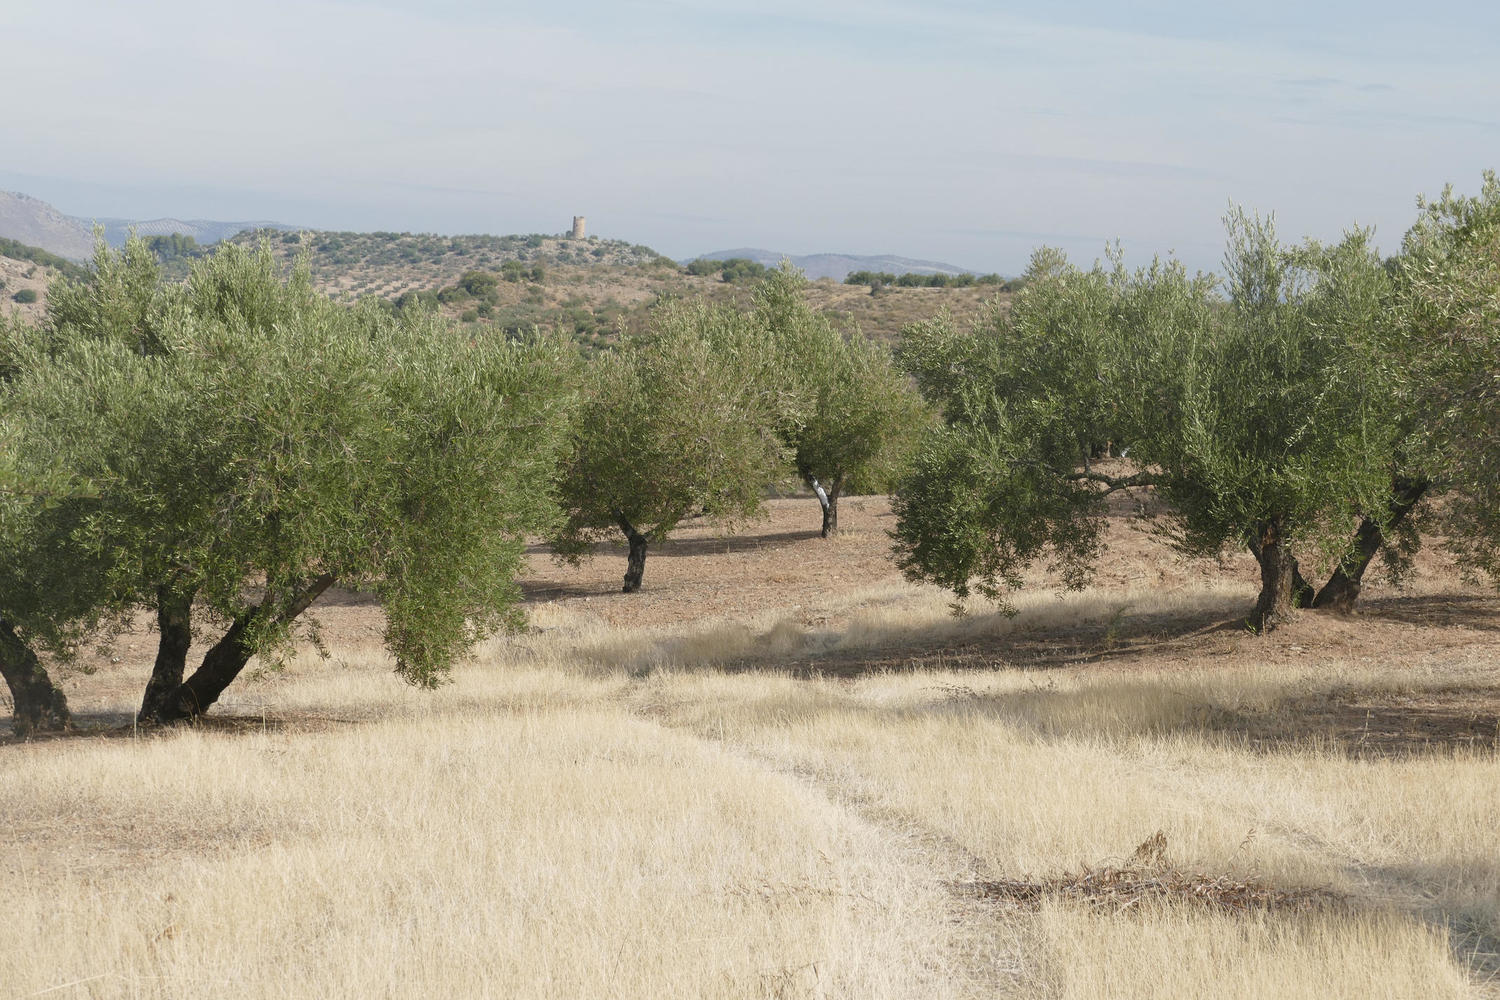 Olive trees, some as old as 500 years, stretch out towards the horizon and a ruined Moorish watchtower